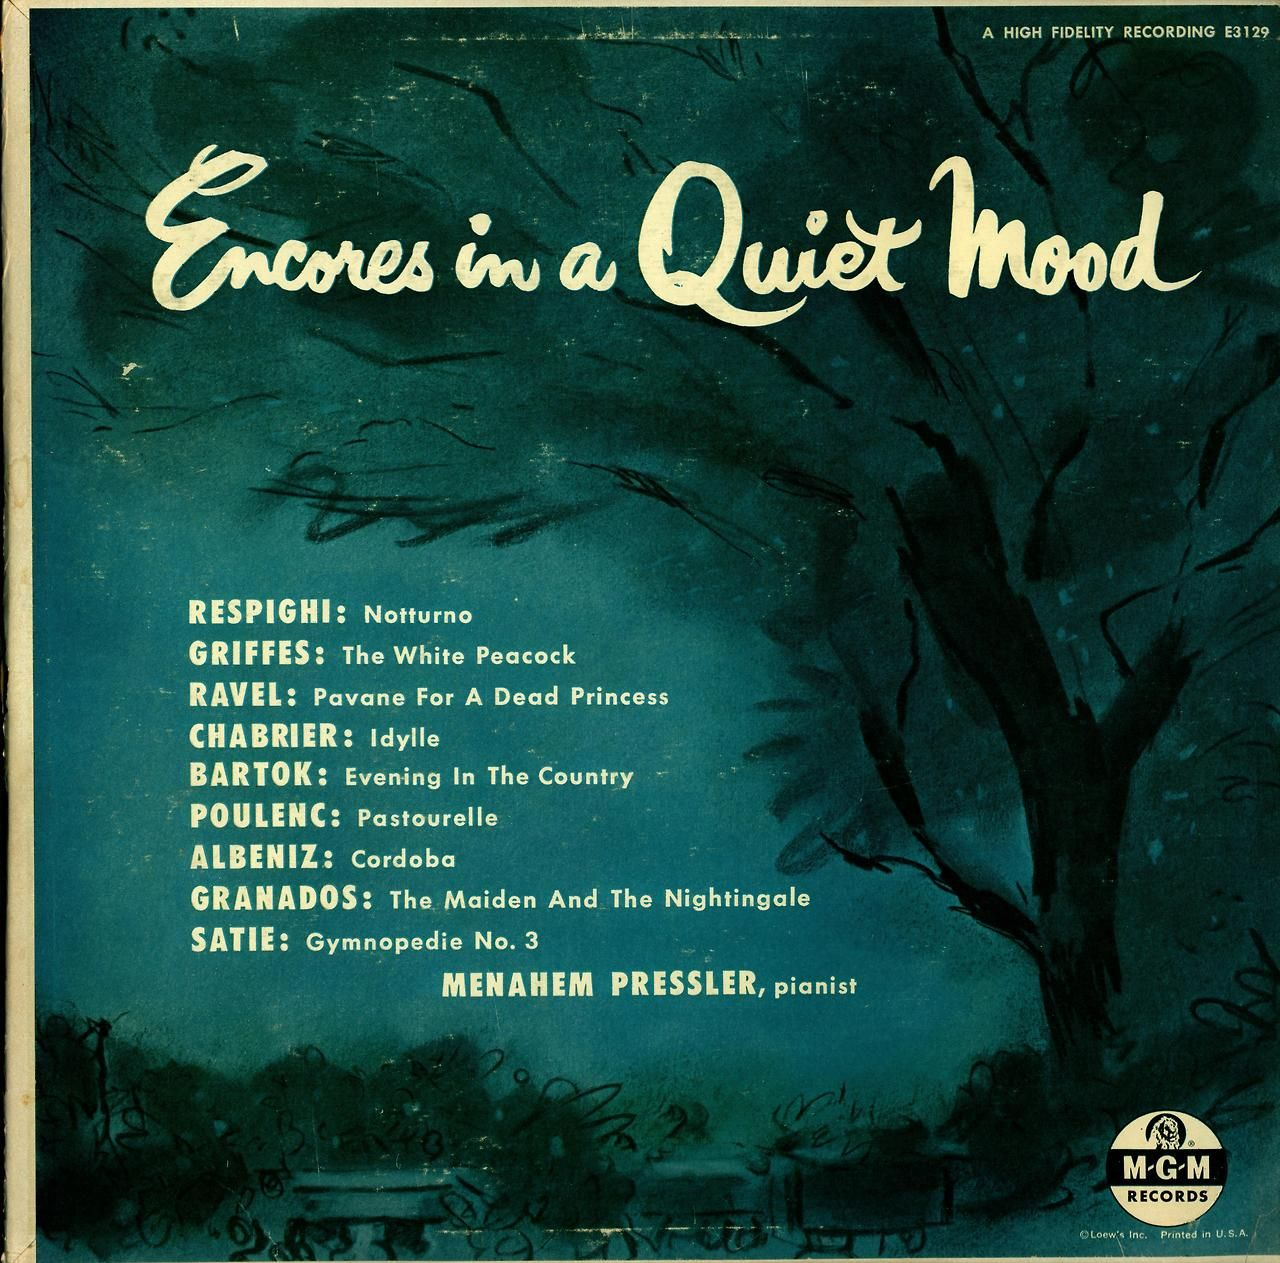 Encores in a Quiet Mood Menahem Pressler, Piano MGM Records E3129 (1959?)